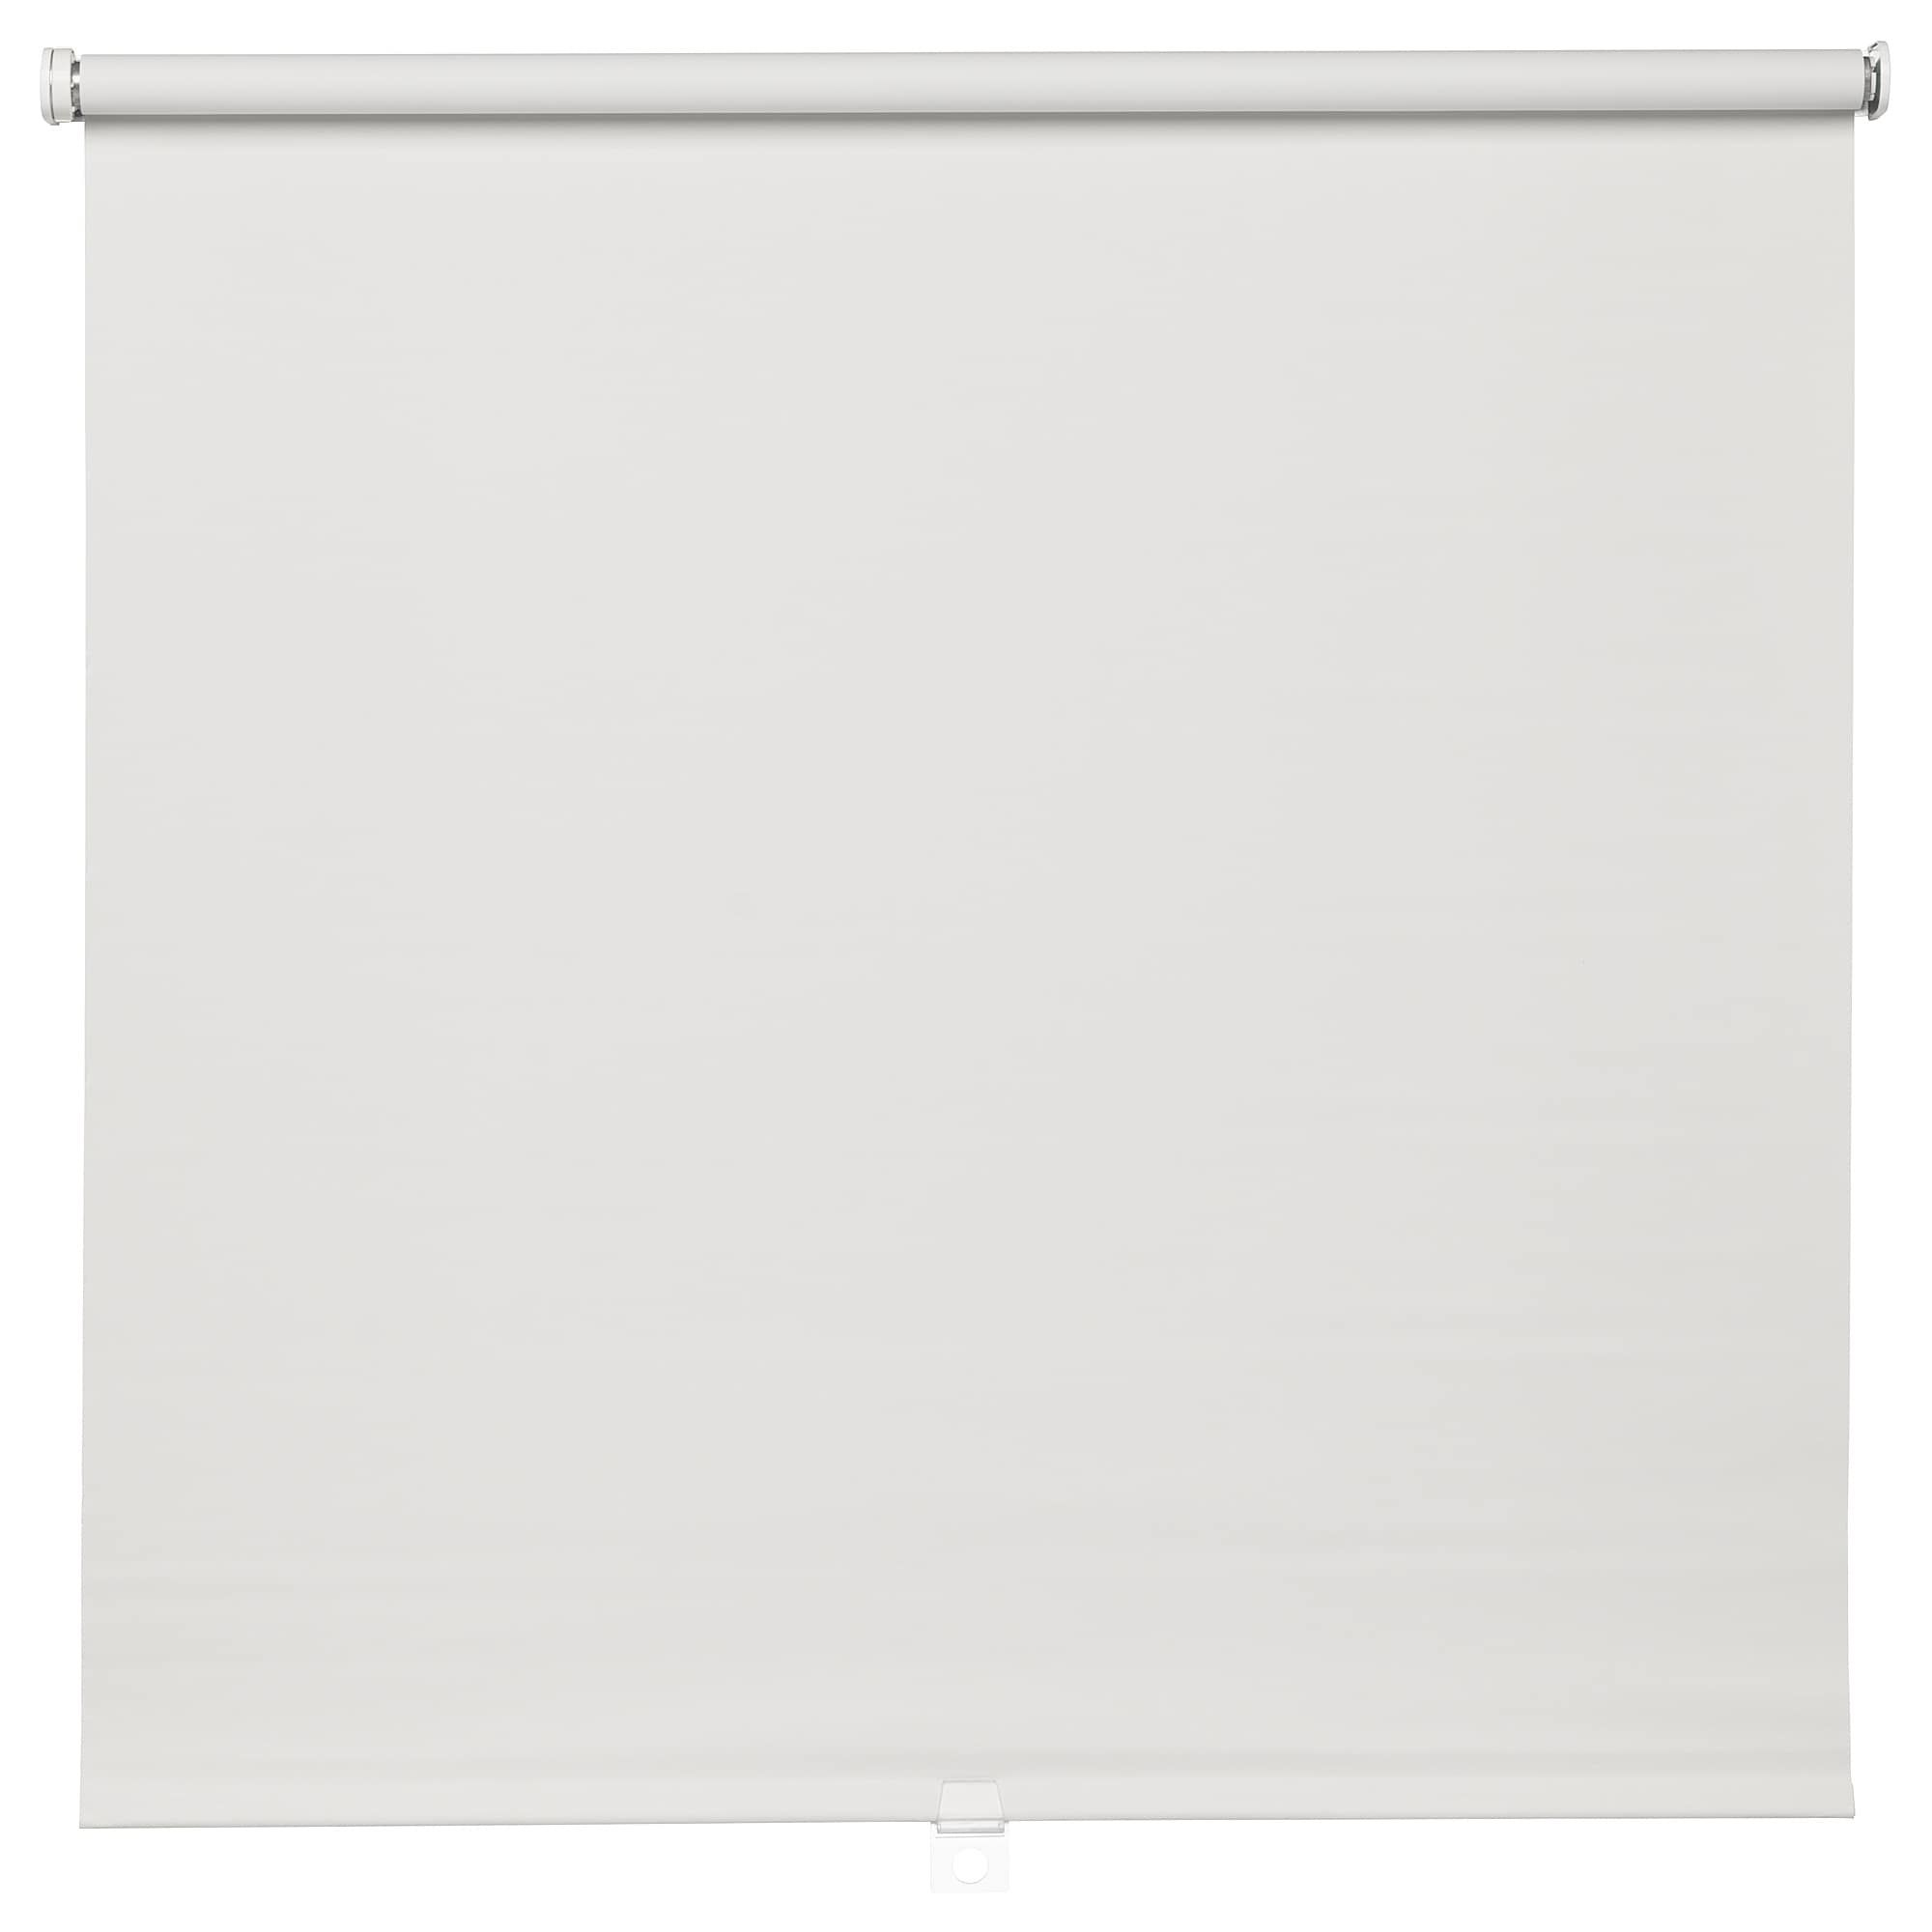 Tupplur Blackout Roller Blind White 32x76 With Images